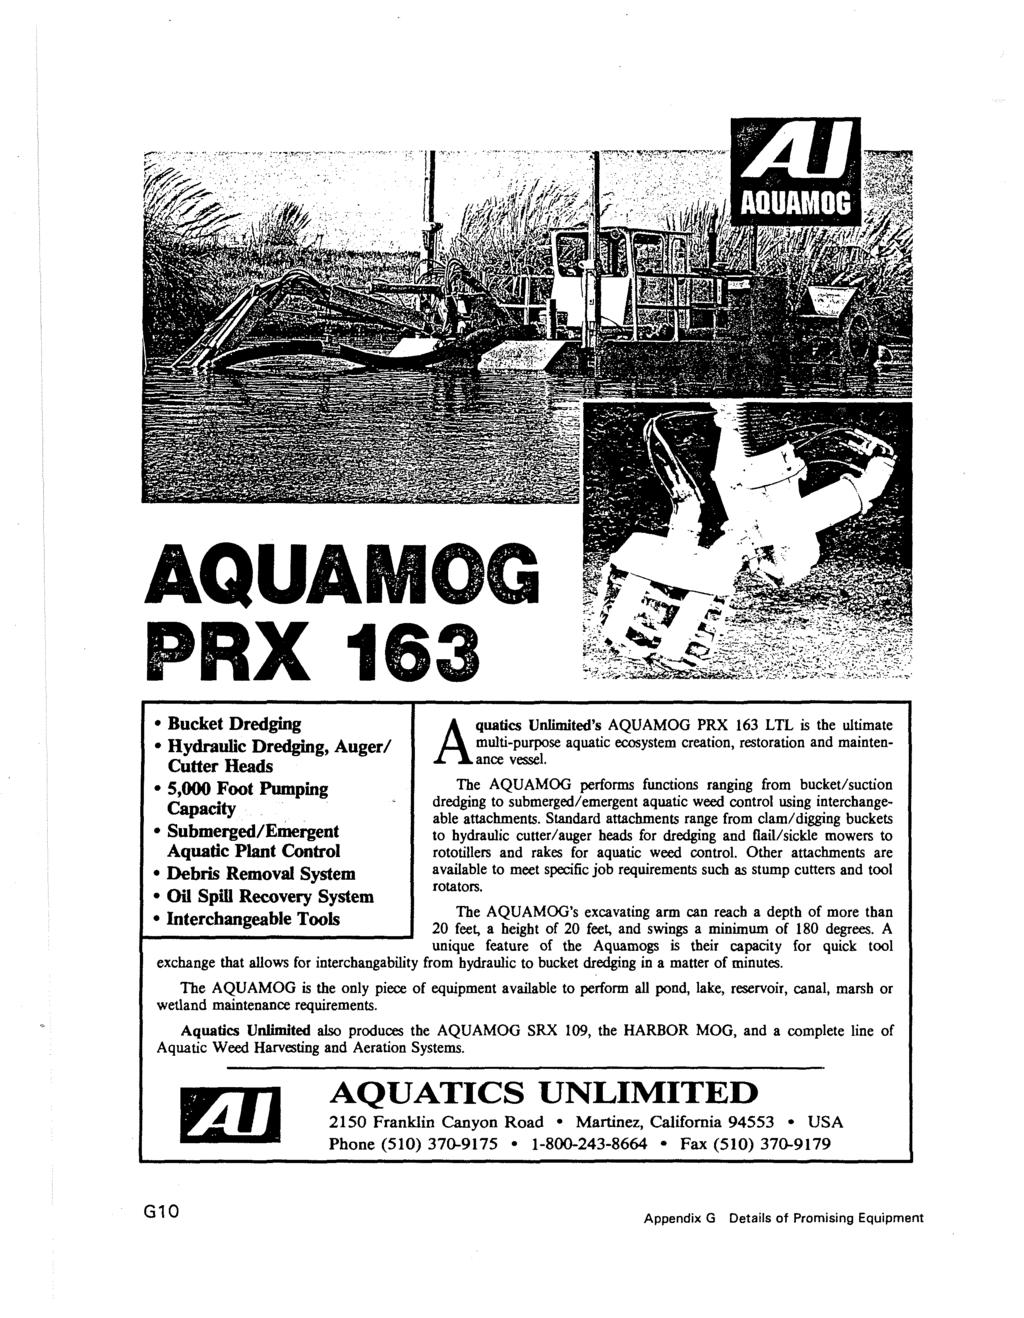 AQUAMOG PRX 163 Bucket Dredging Hydraulic Dredging, Auger/ Cutter Heads  5,000 Foot Pumping Capacity